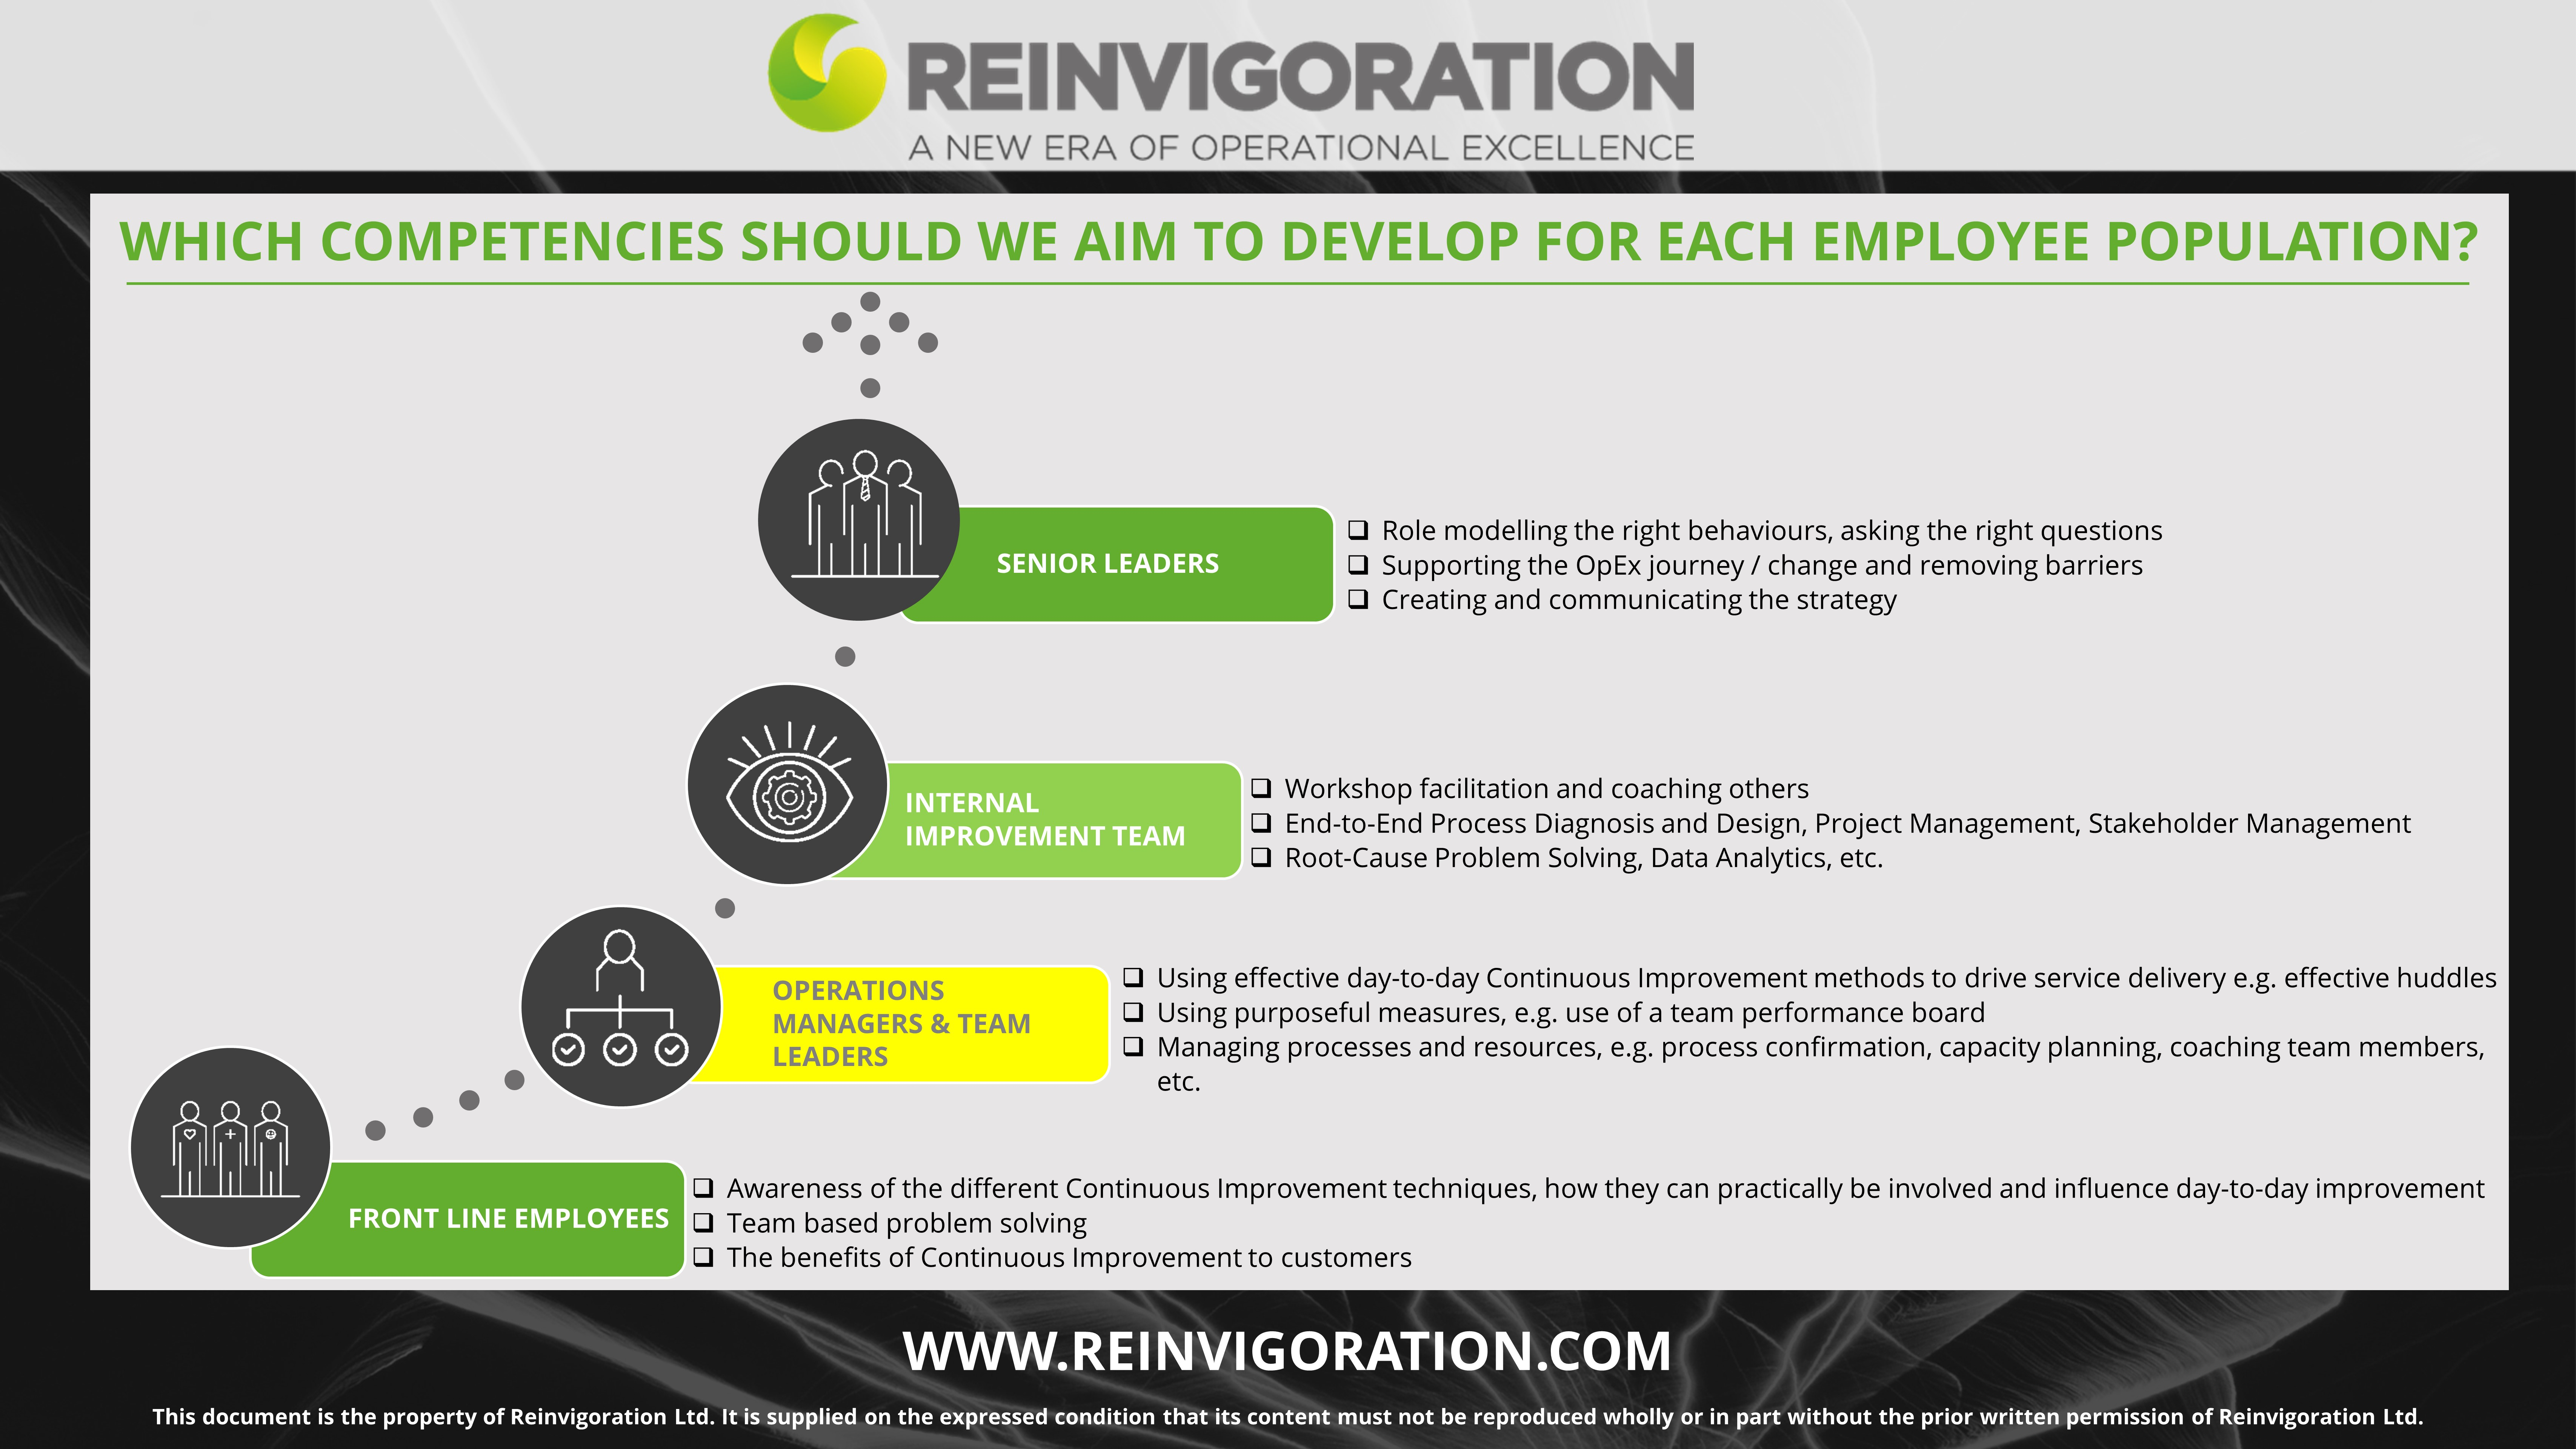 BUILDING OPERATIONAL EXCELLENCE COMPETENCIES - INFOGRAPHIC - REINVIGORATION